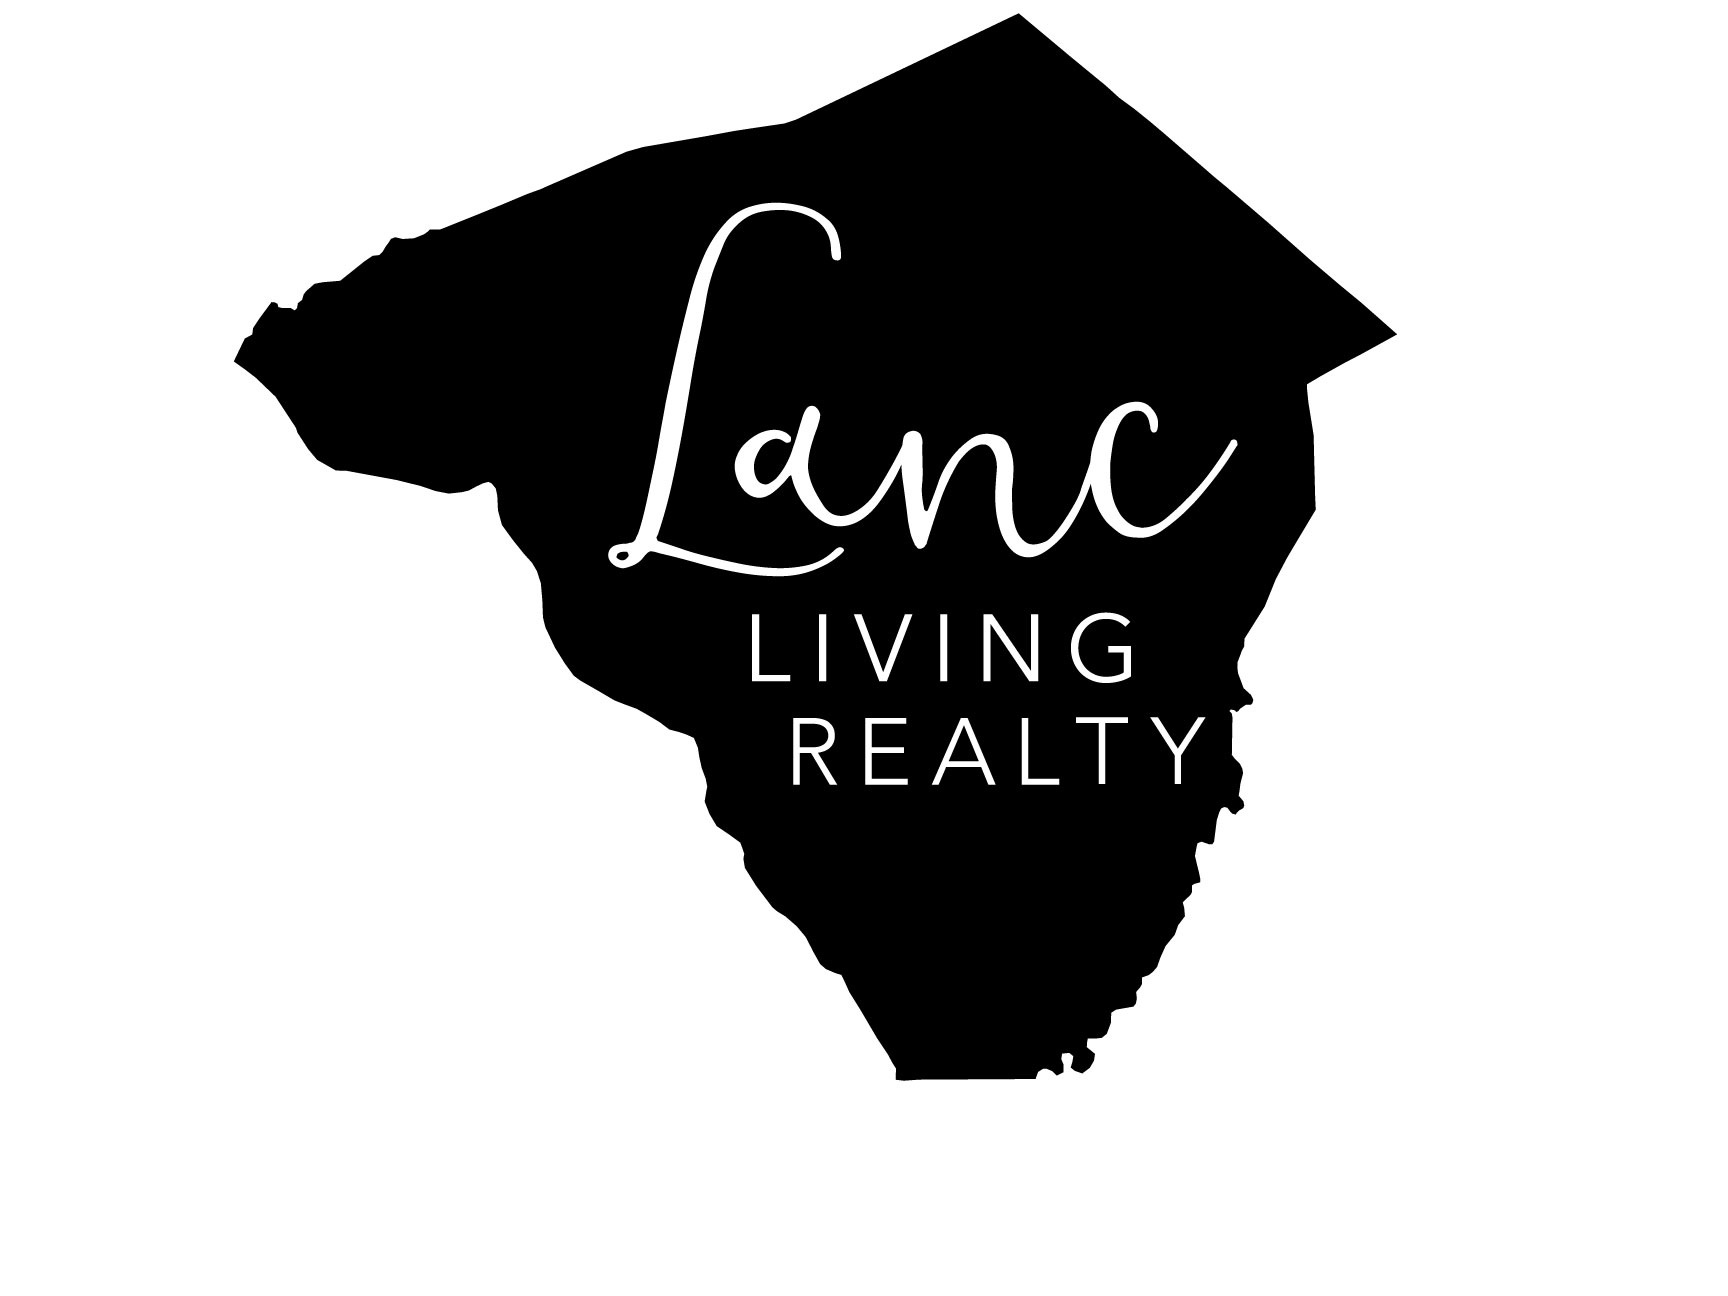 Sponsored by LancLiving Realty! -